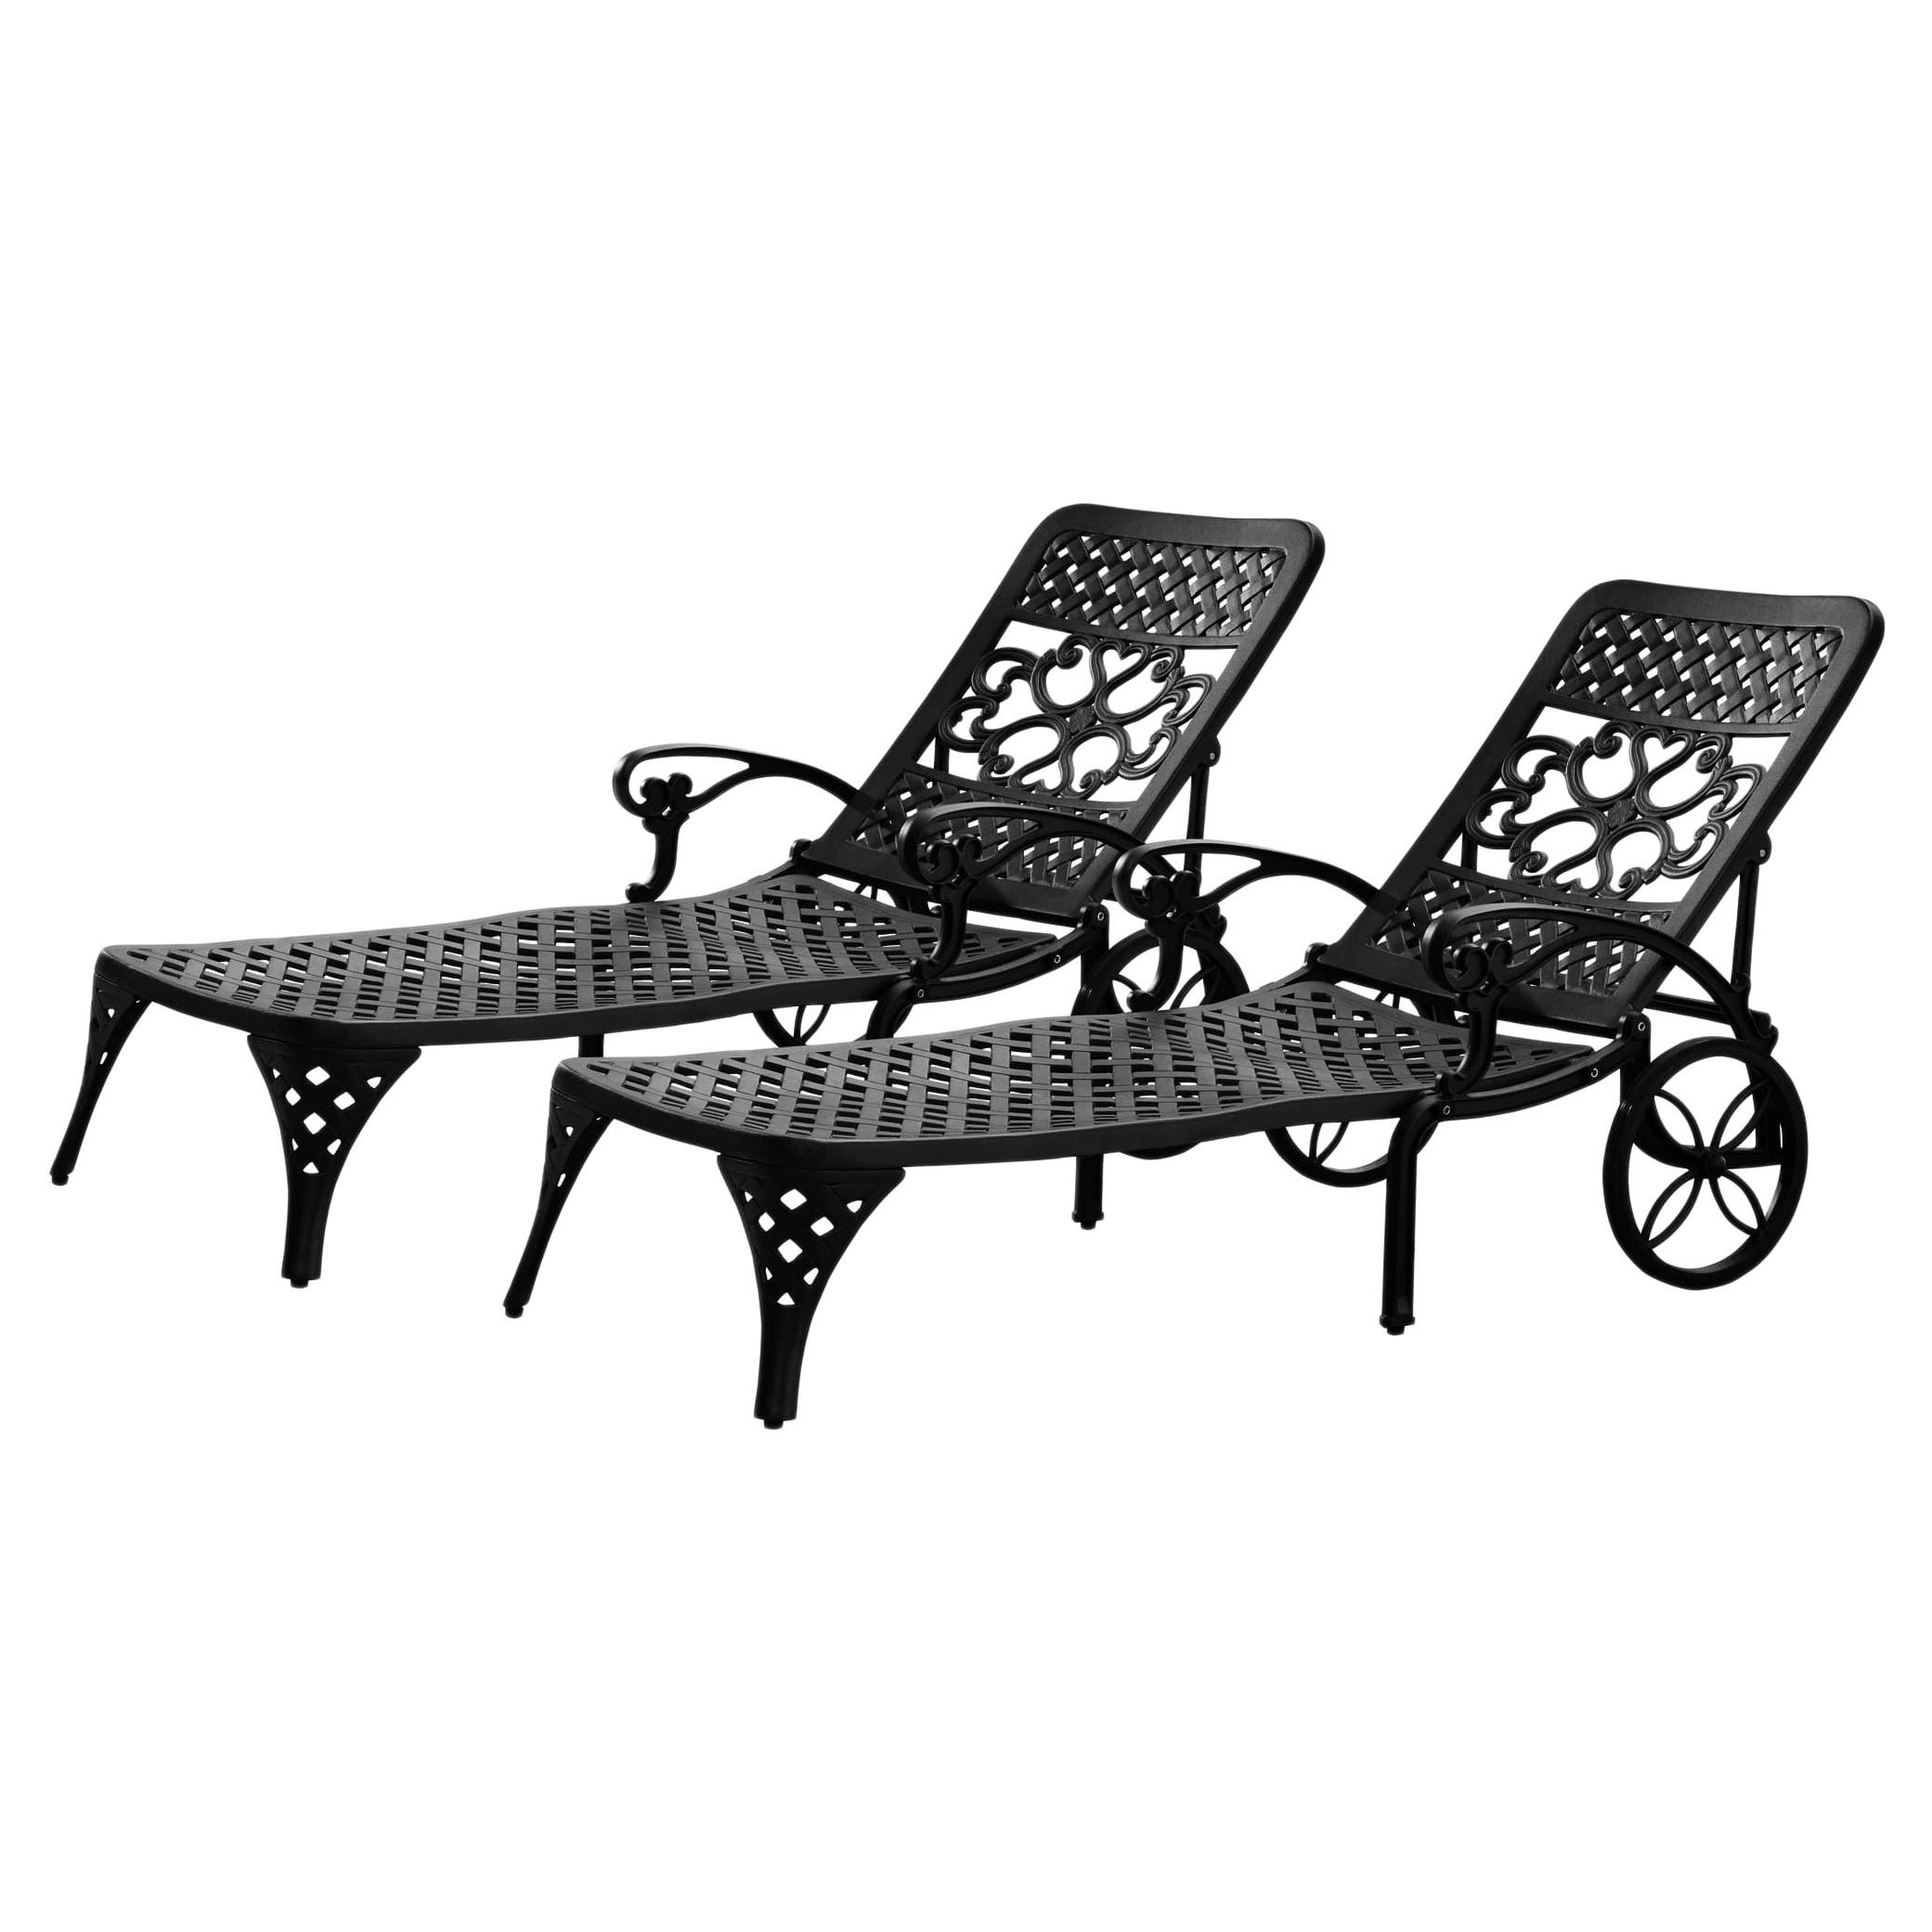 Current Havenside Home Fenwick Chaise Lounge Chairs With Regard To Havenside Home Fenwick Chaise Lounge Chairs (set Of 2) (View 16 of 25)